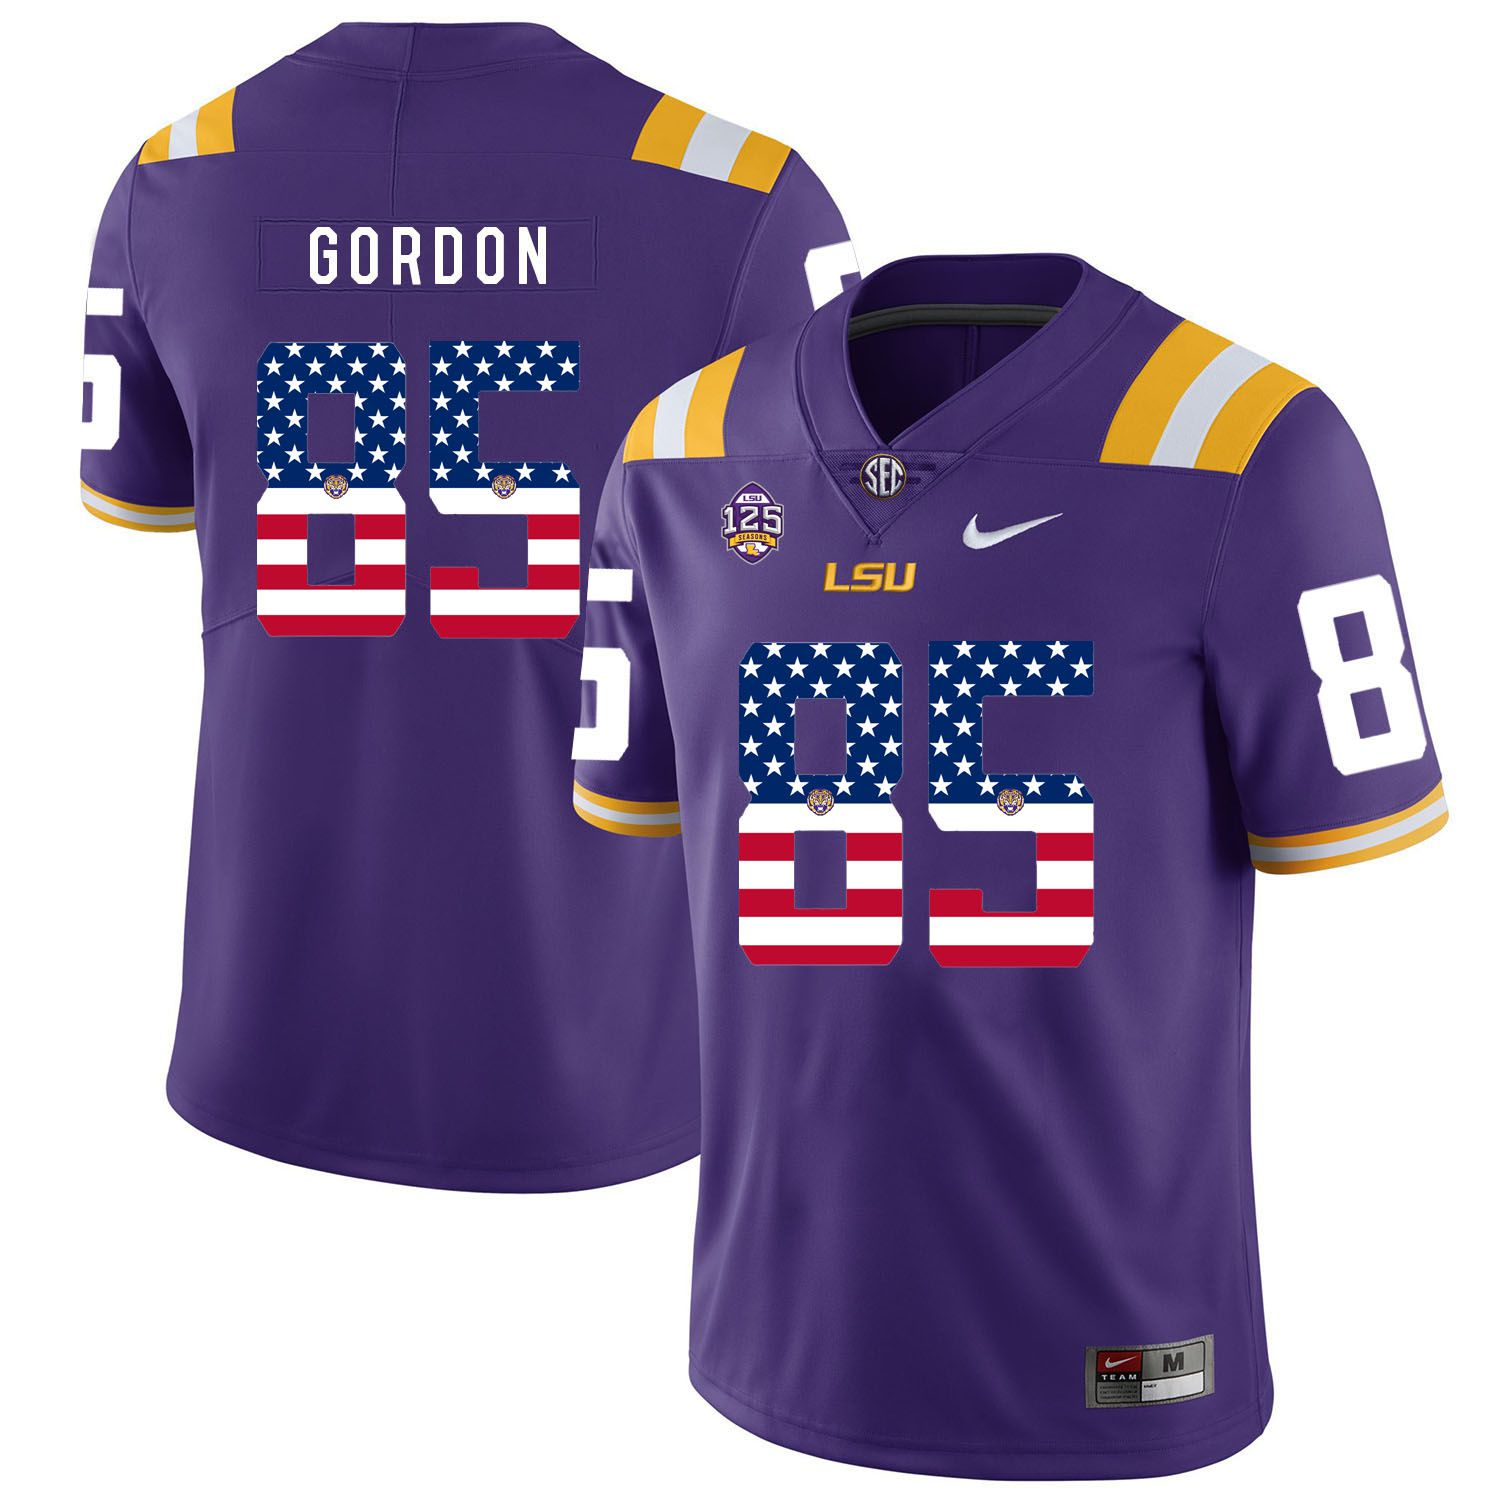 Men LSU Tigers 85 Gordon Purple Flag Customized NCAA Jerseys